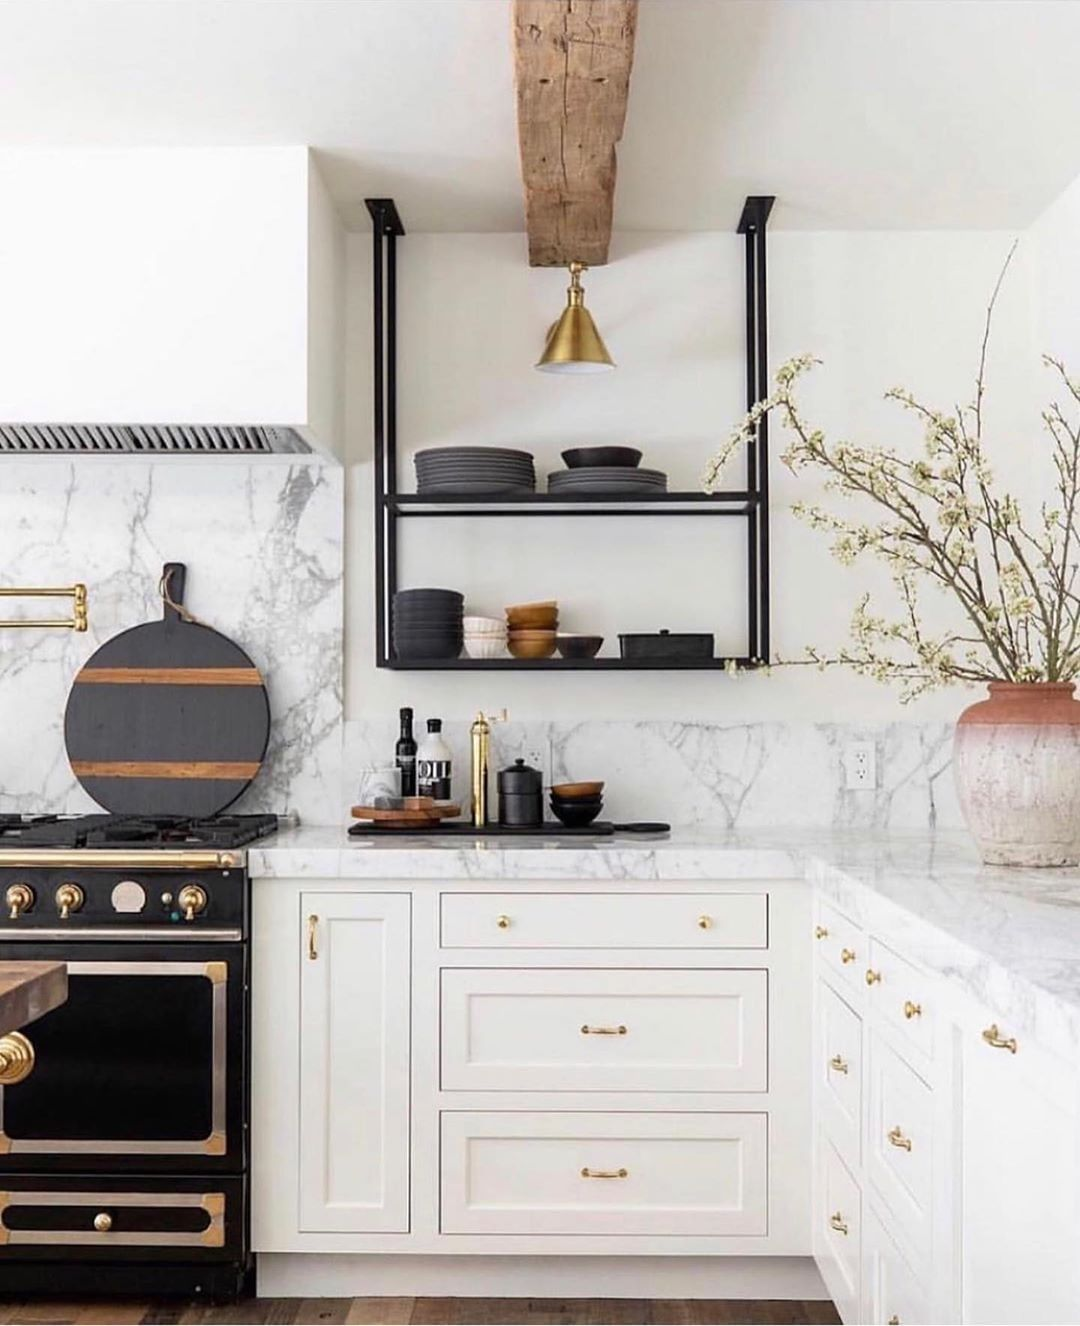 Hofdeco On Instagram Let S Have A Look At This Light And Bright Kitchen Classic Black And White Vibes A Kitchen Remodel Kitchen Inspirations Kitchen Design